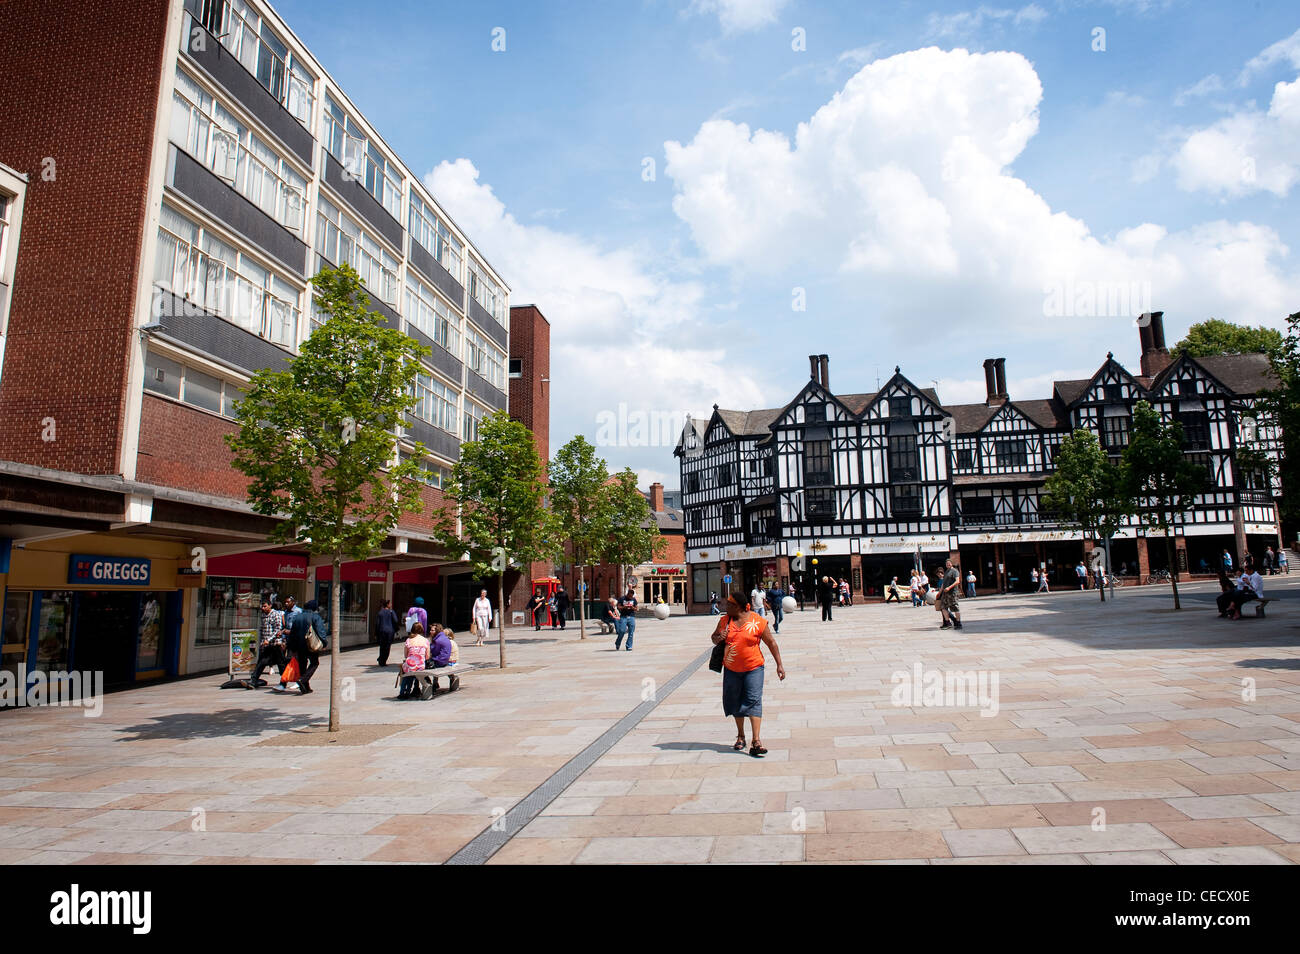 People shopping in Coventry, West Midlands, England. - Stock Image